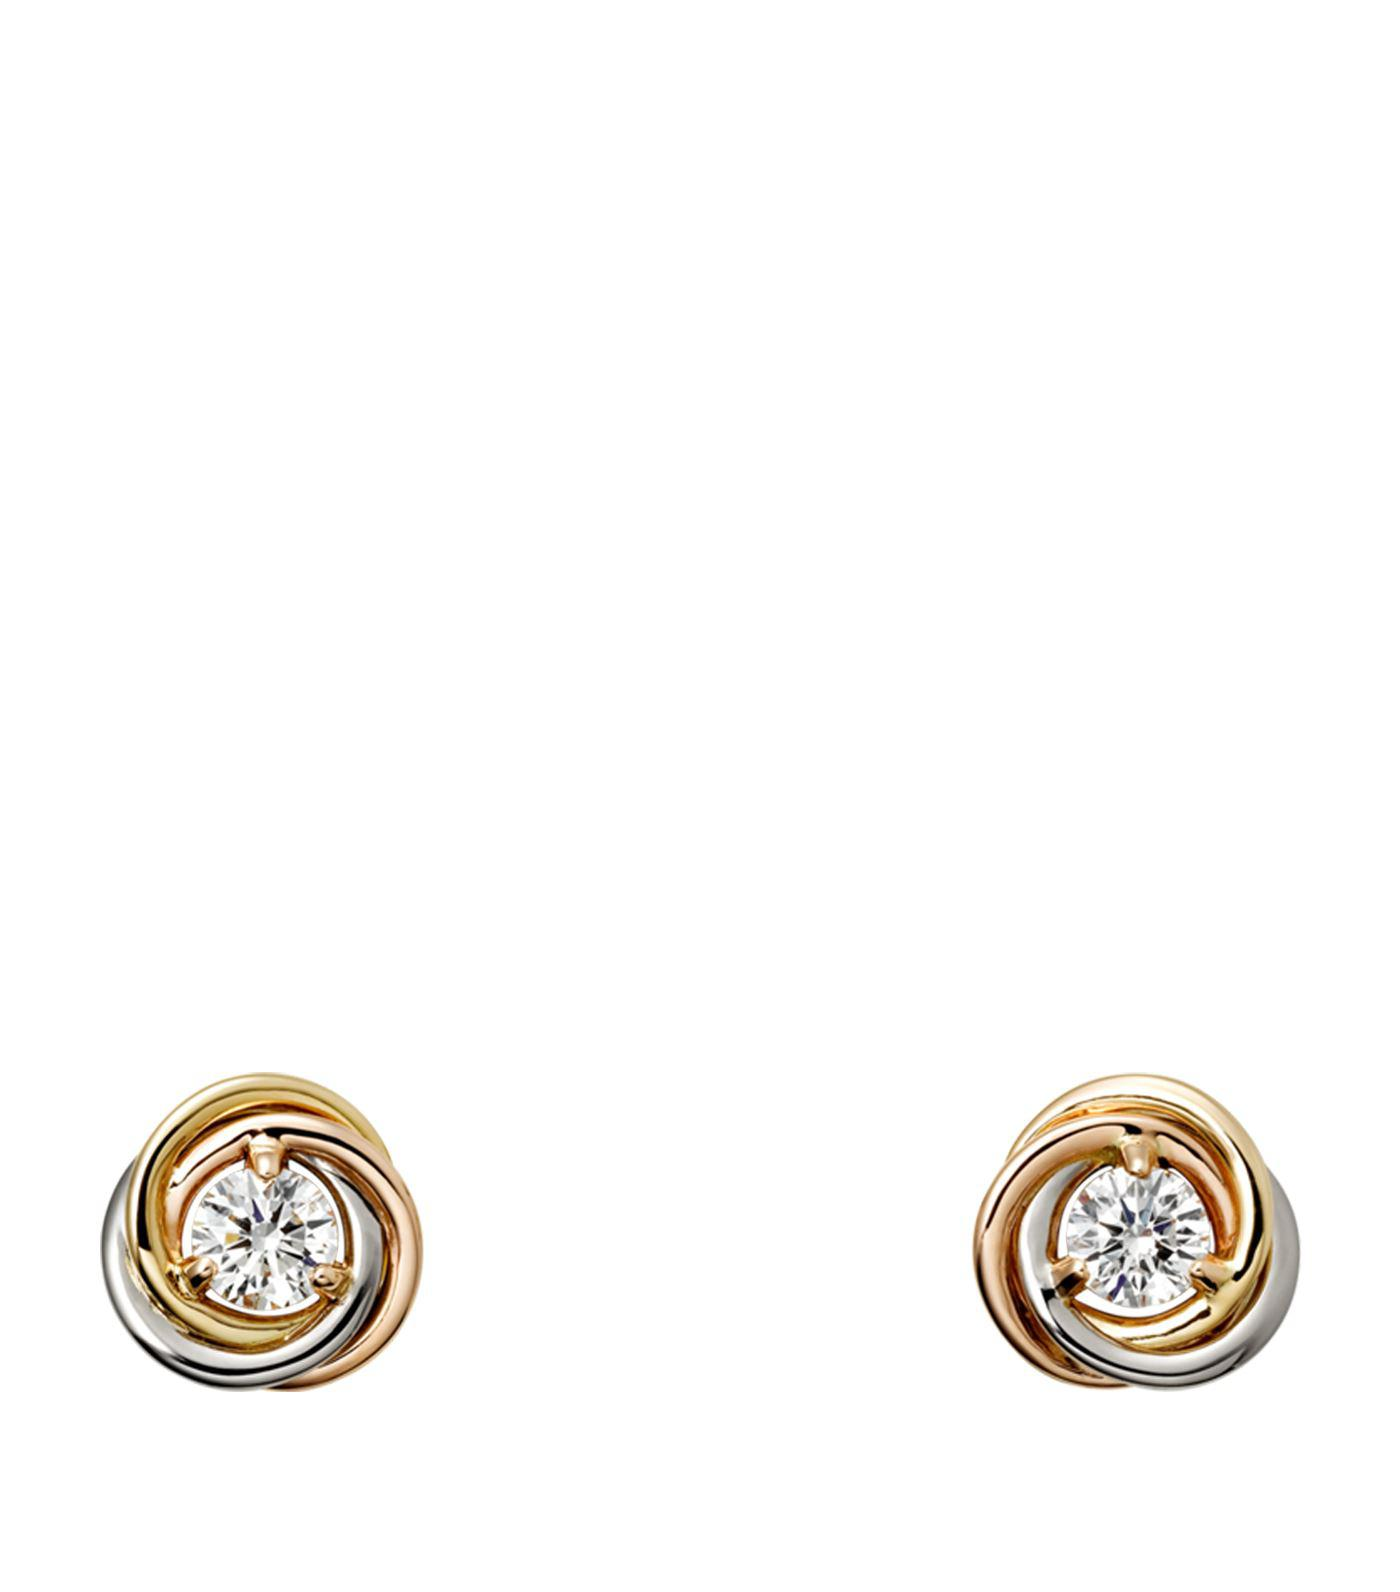 en gold product cartier trinity timelesspriceless number by ref earrings de